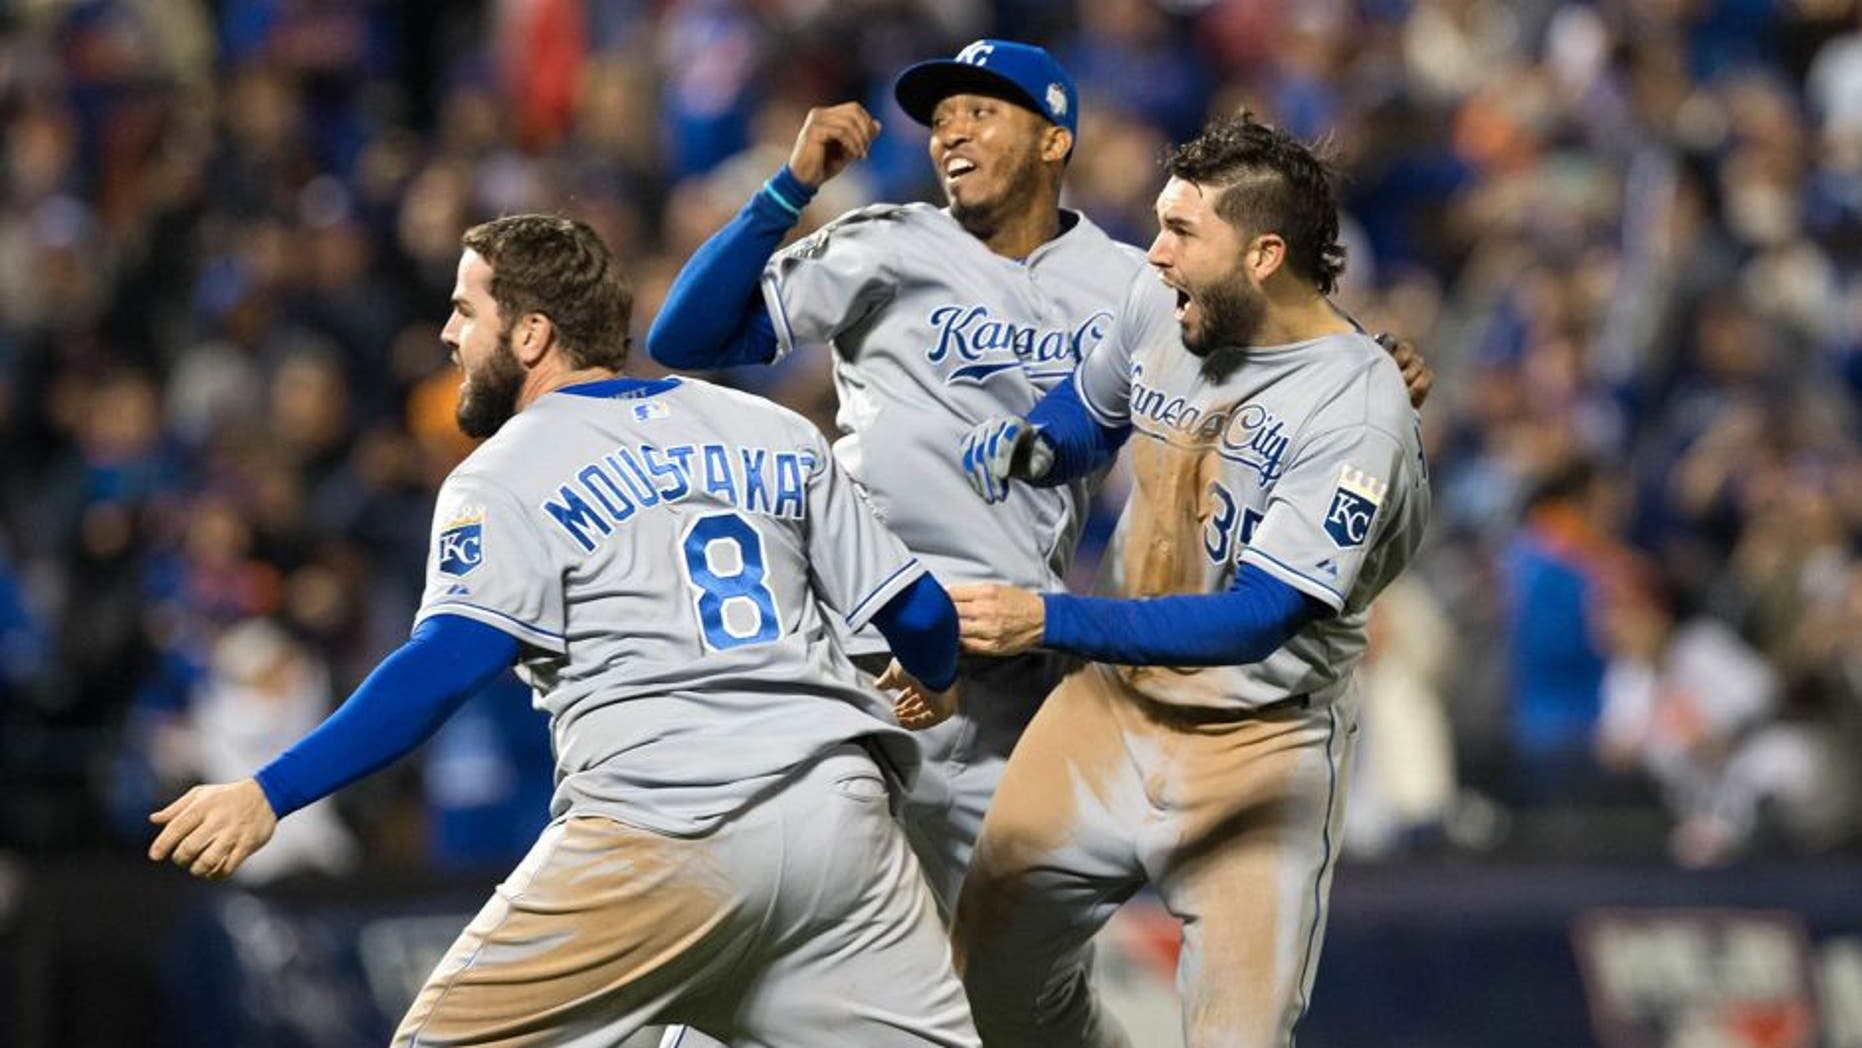 NEW YORK, NY - NOVEMBER 1: Mike Moustakas #8, Eric Hosmer #35 and Alcides Escobar #2 of the Kansas City Royals celebrate on the field after defeating the New York Mets in Game 5 of the 2015 World Series at Citi Field on Sunday, November 1, 2015 in the Queens borough of New York City. (Photo by Rob Tringali/MLB Photos via Getty Images)